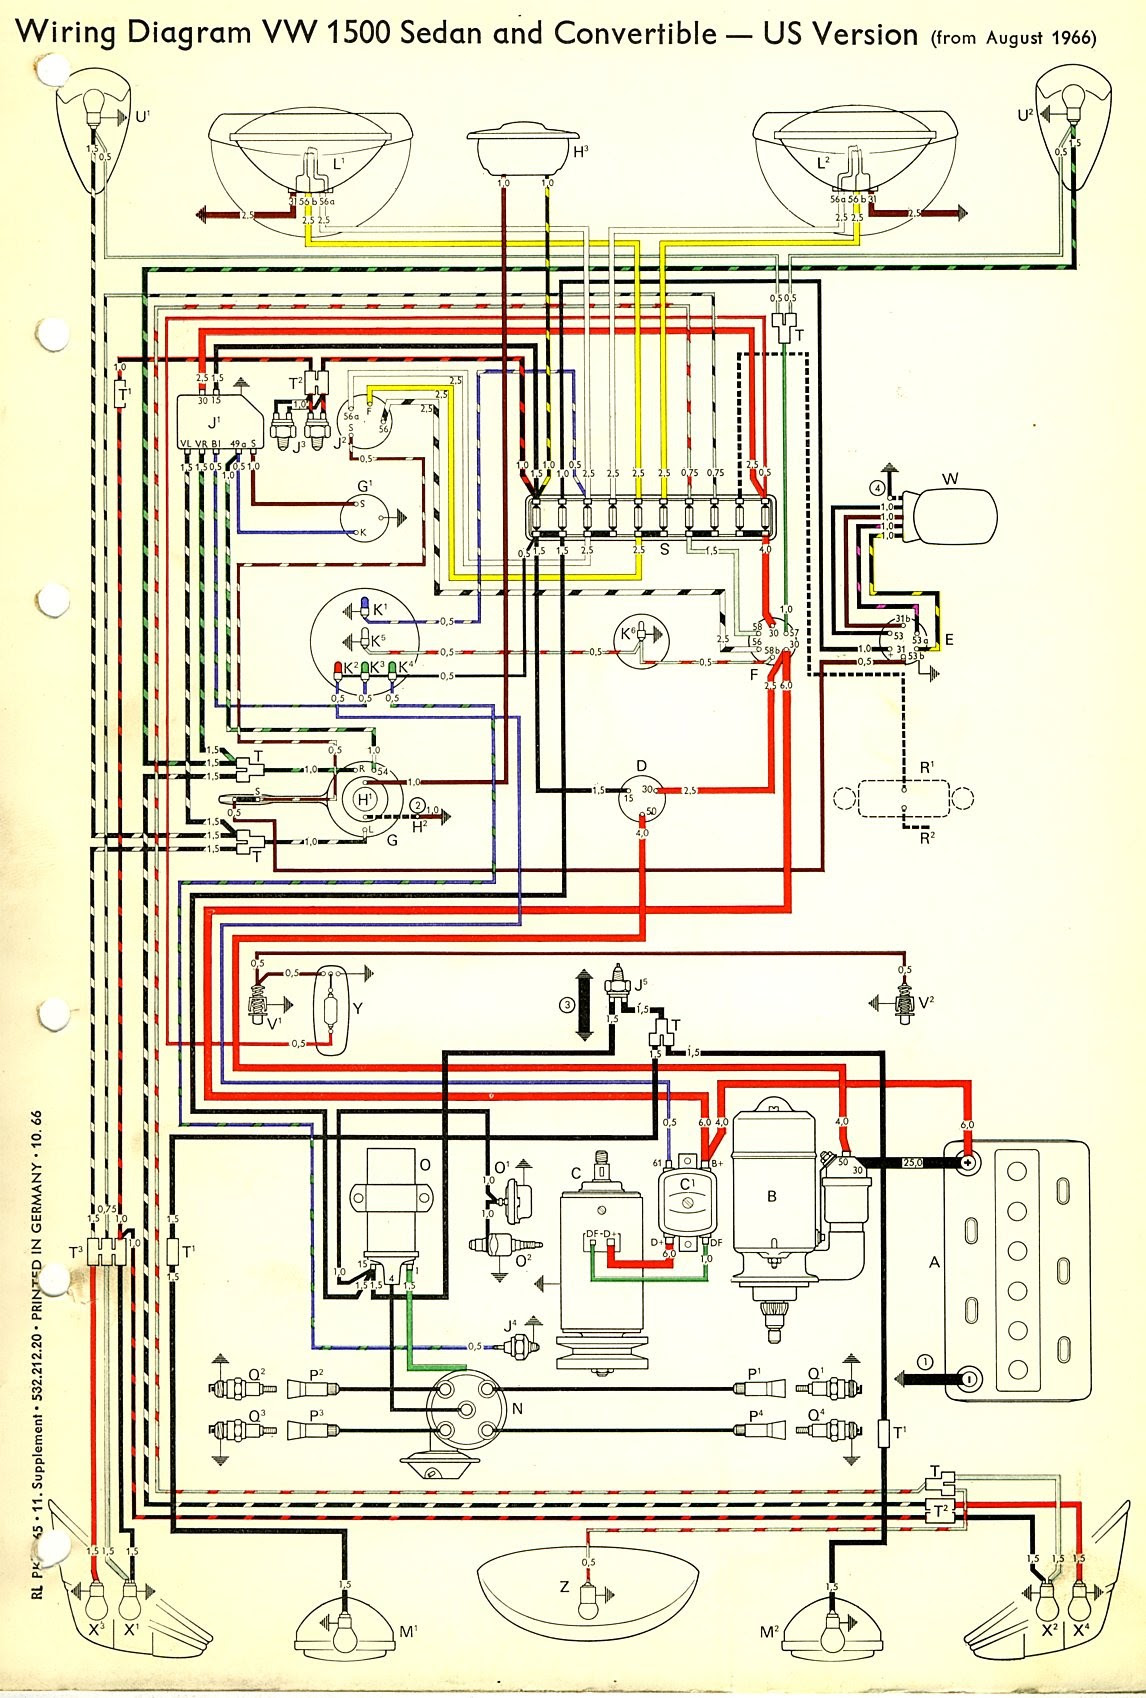 71 Vw Beetle Wiring Diagram Wiring Diagrams Element Element Miglioribanche It